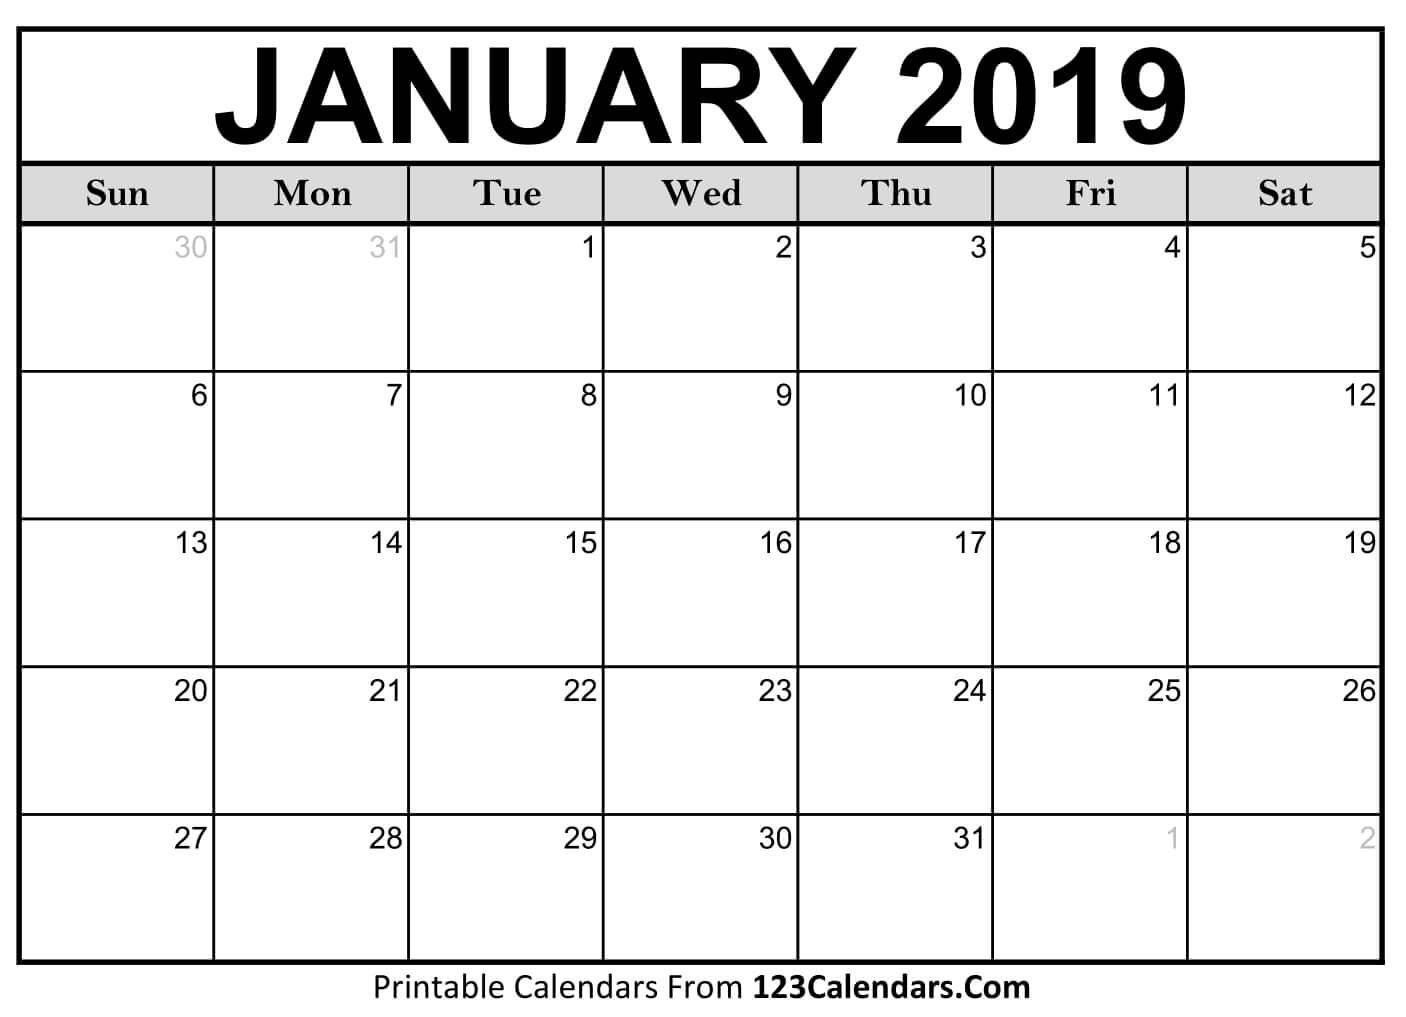 Printable January 2019 Calendar Templates - 123Calendars 2019 Calendars